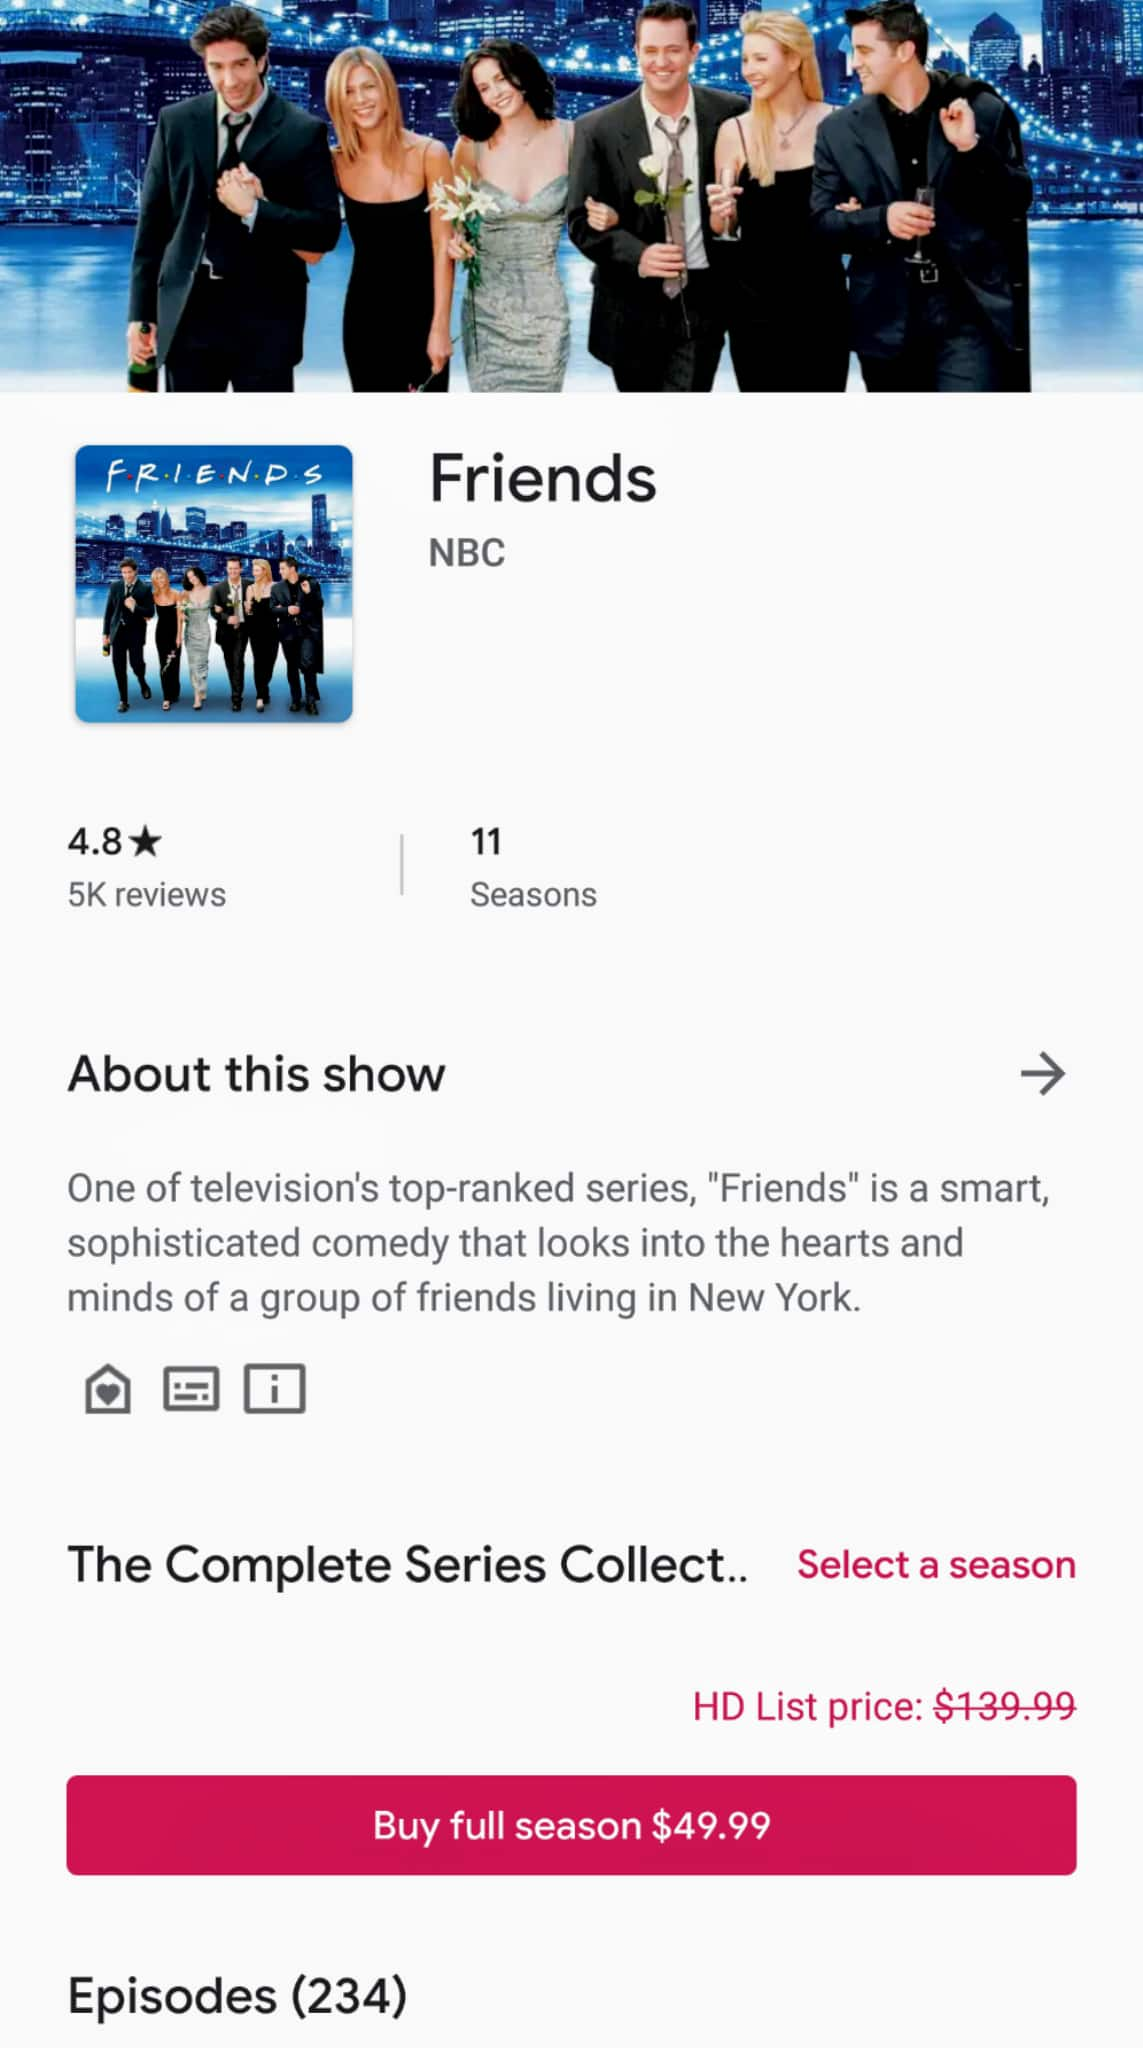 Friends Complete TV Series Full HD version $49.99